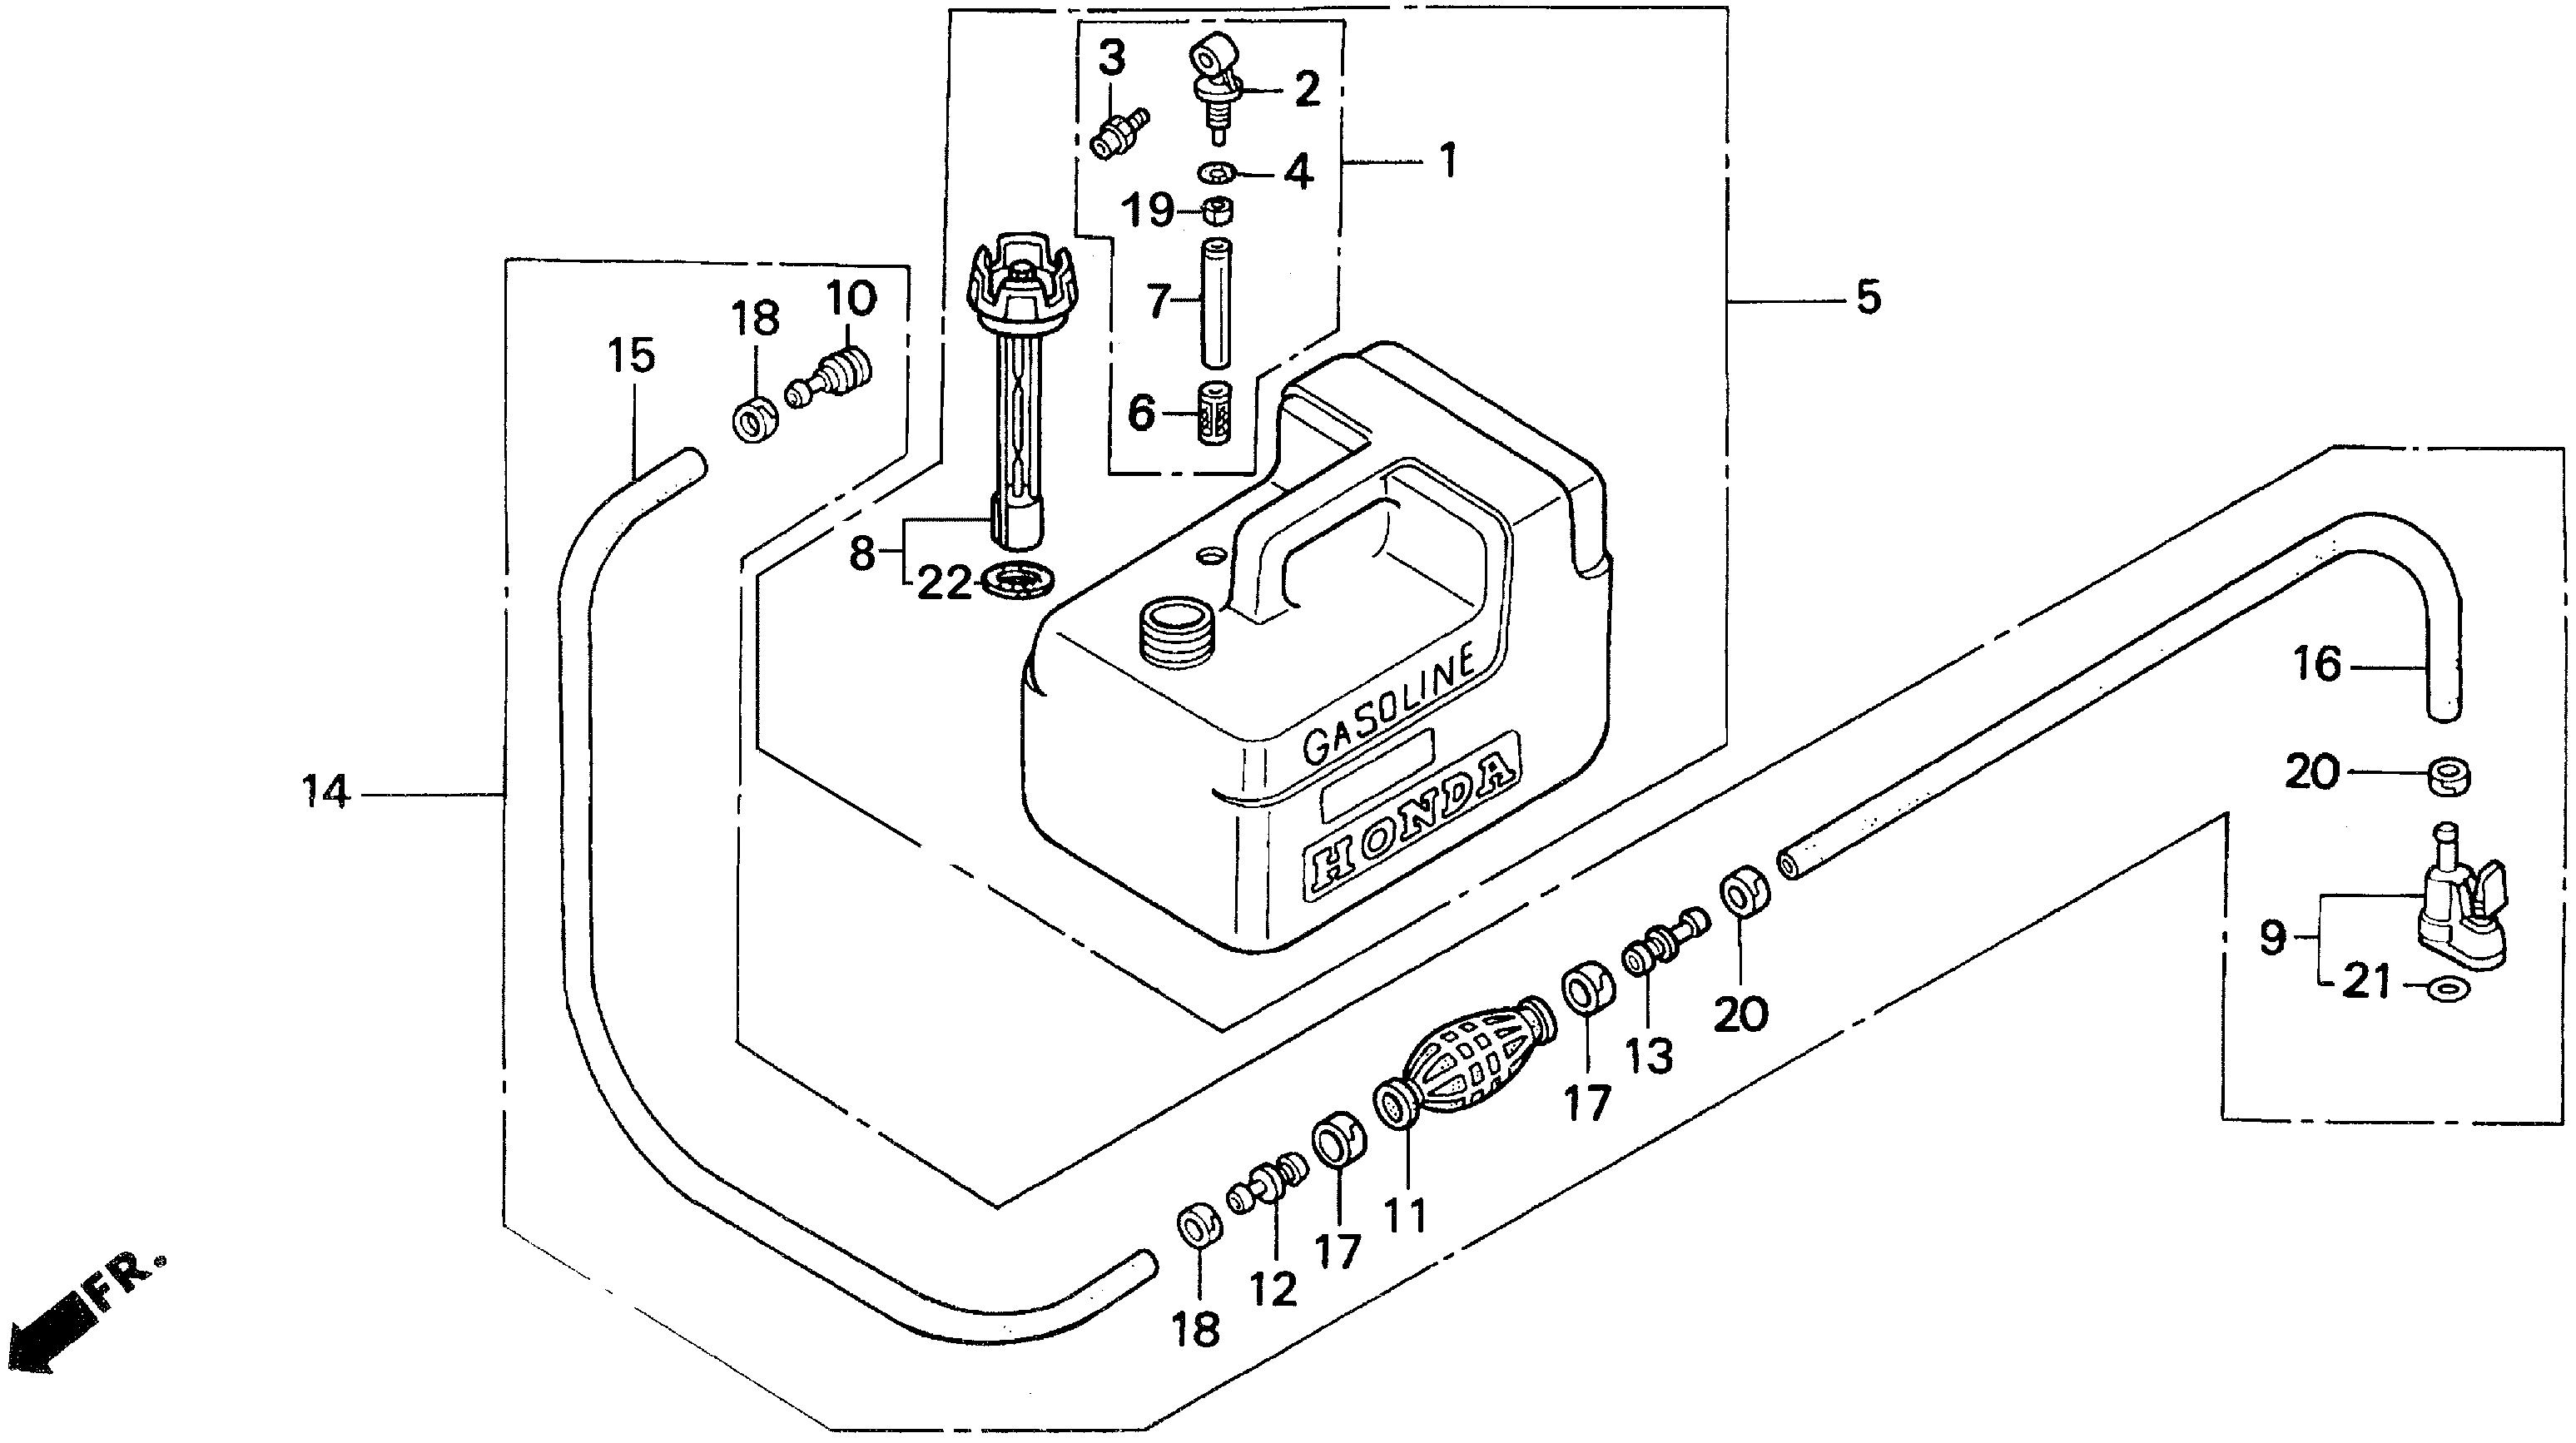 Honda Marine Parts Look Up Official Site Bf60 Wiring Diagram Fuel Tank 2